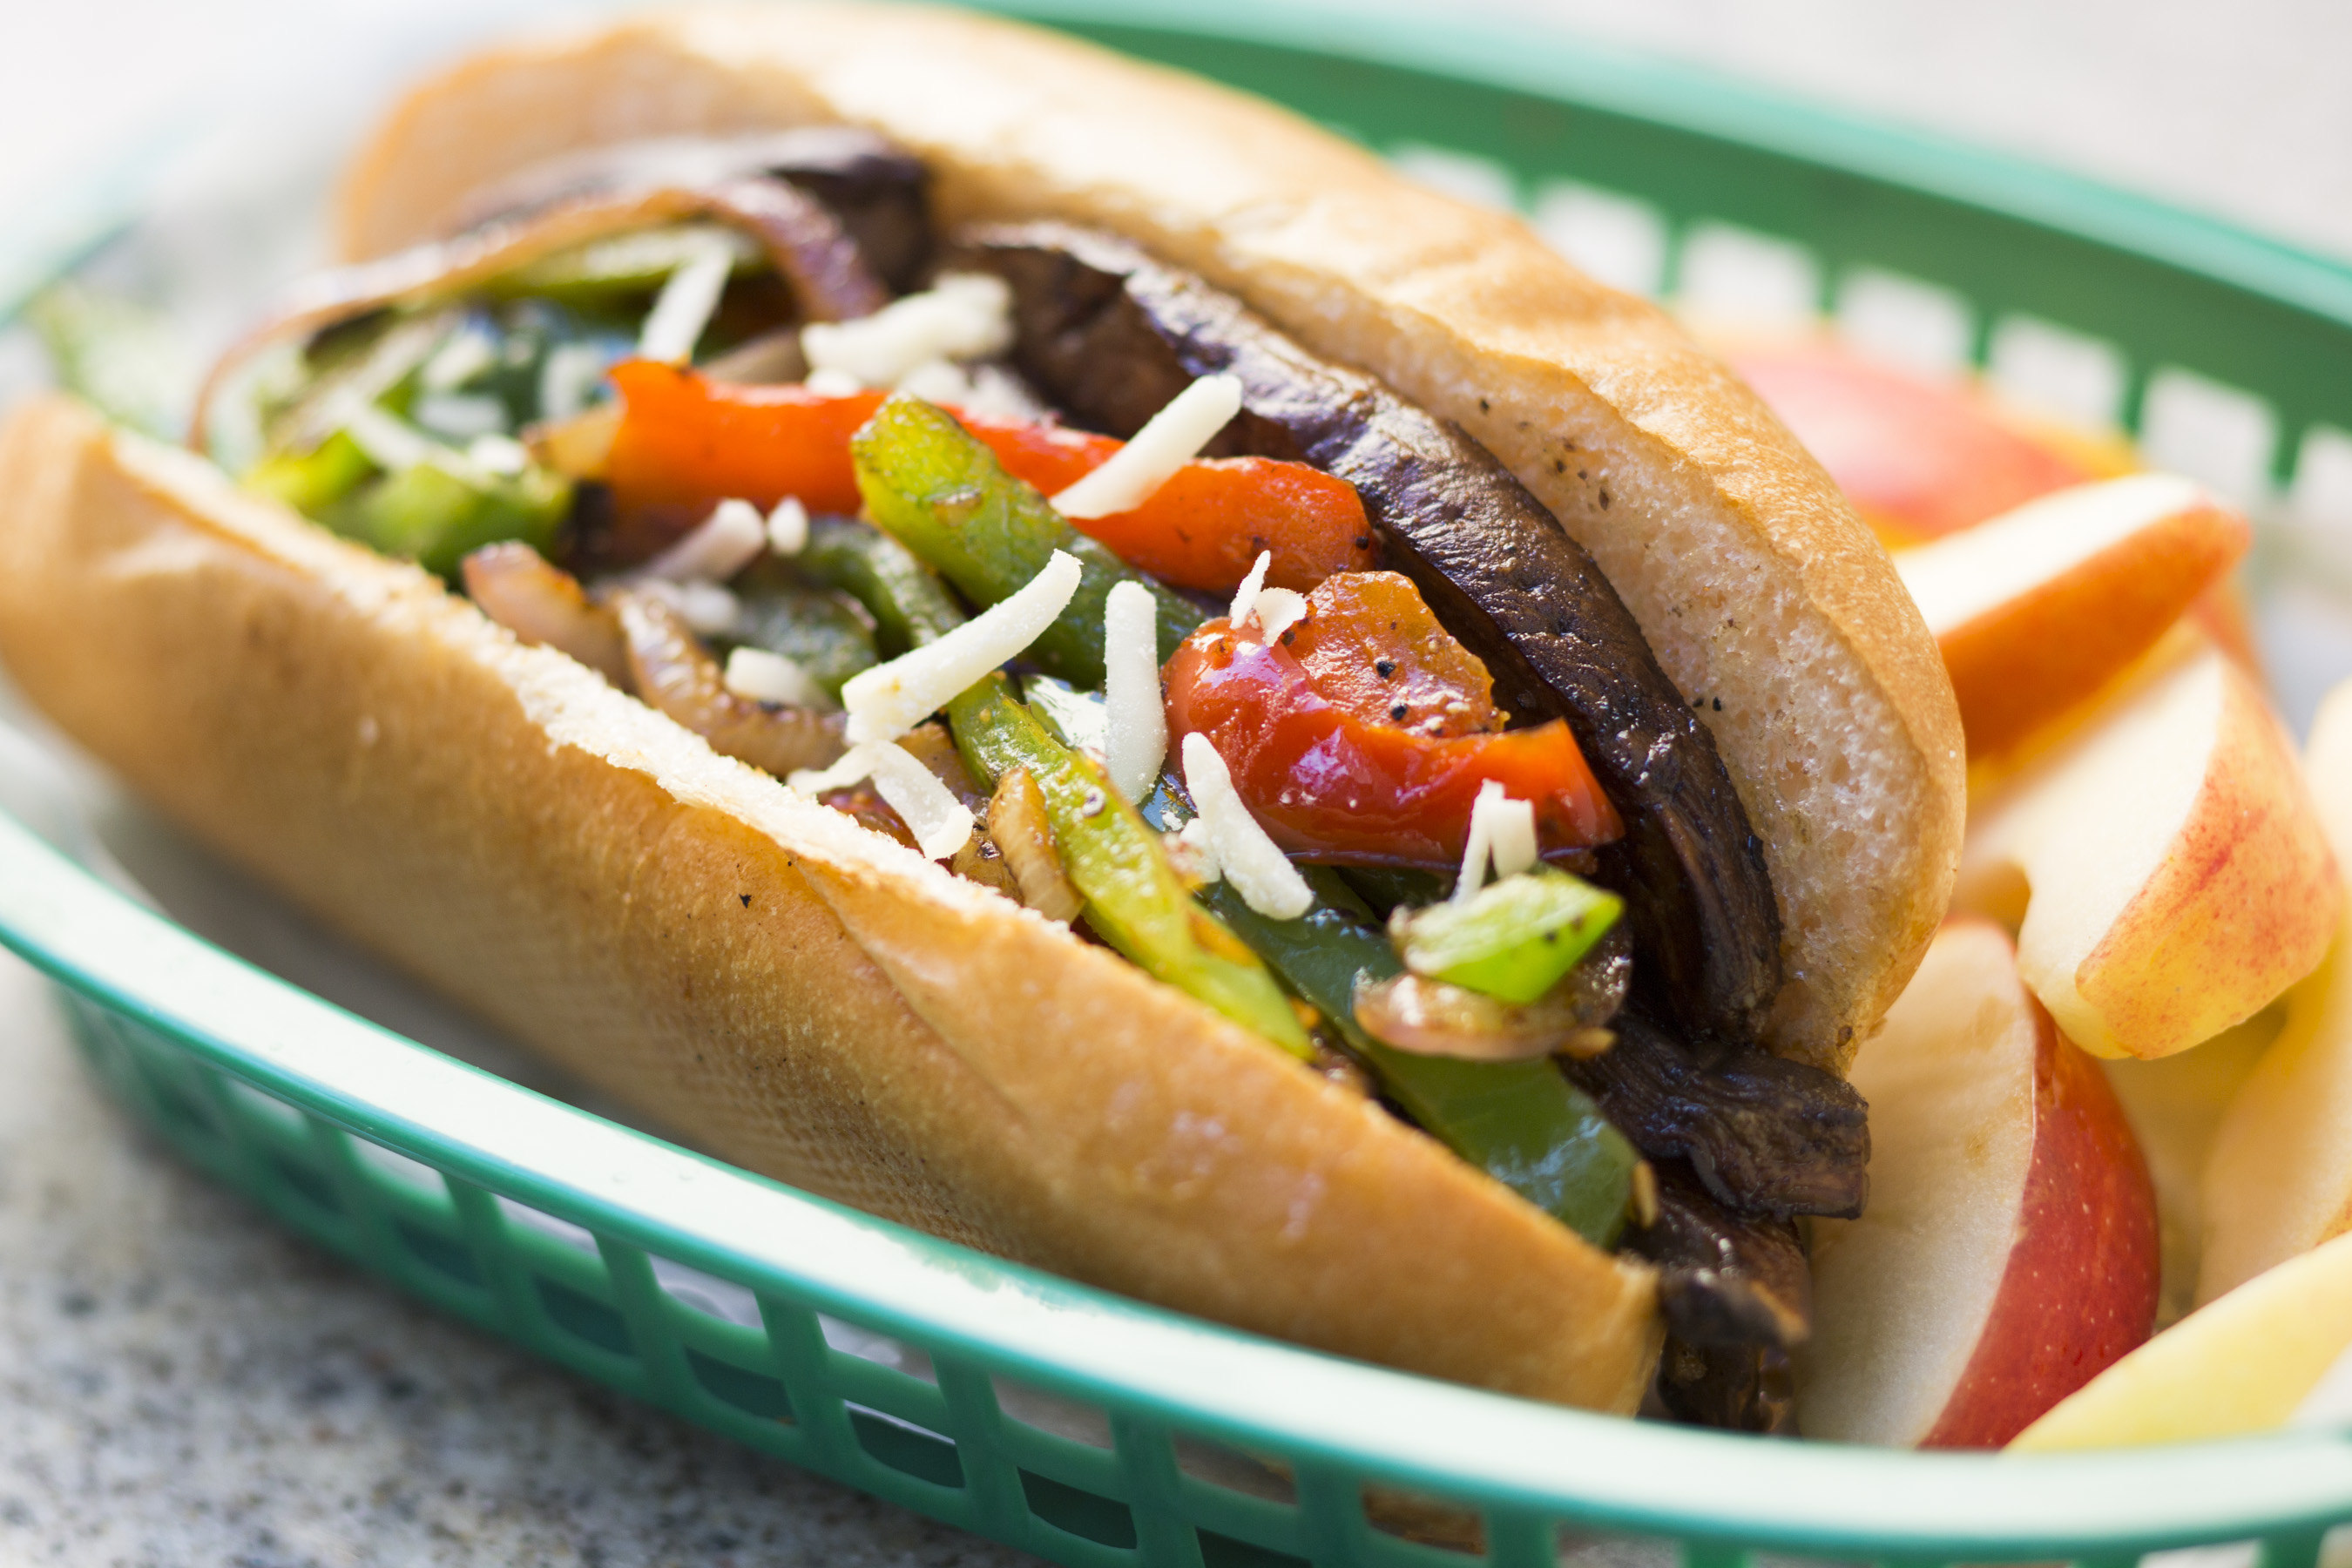 Vegetarian and Vegan Food Options at Disneyland Resort: Fact Sheet